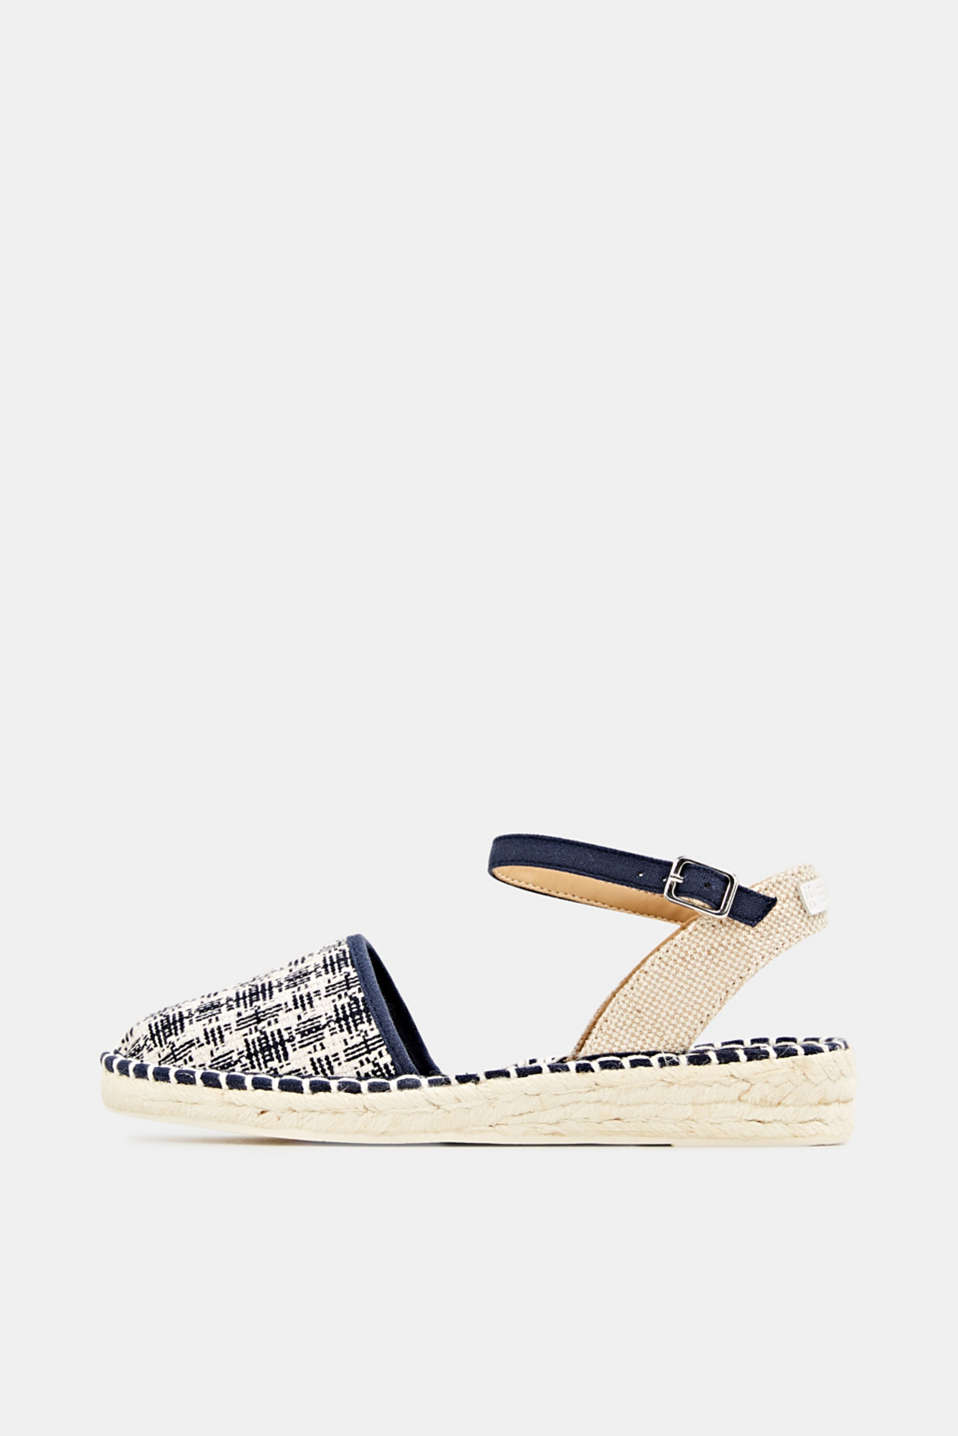 Esprit - Espadrille sandals with a check pattern